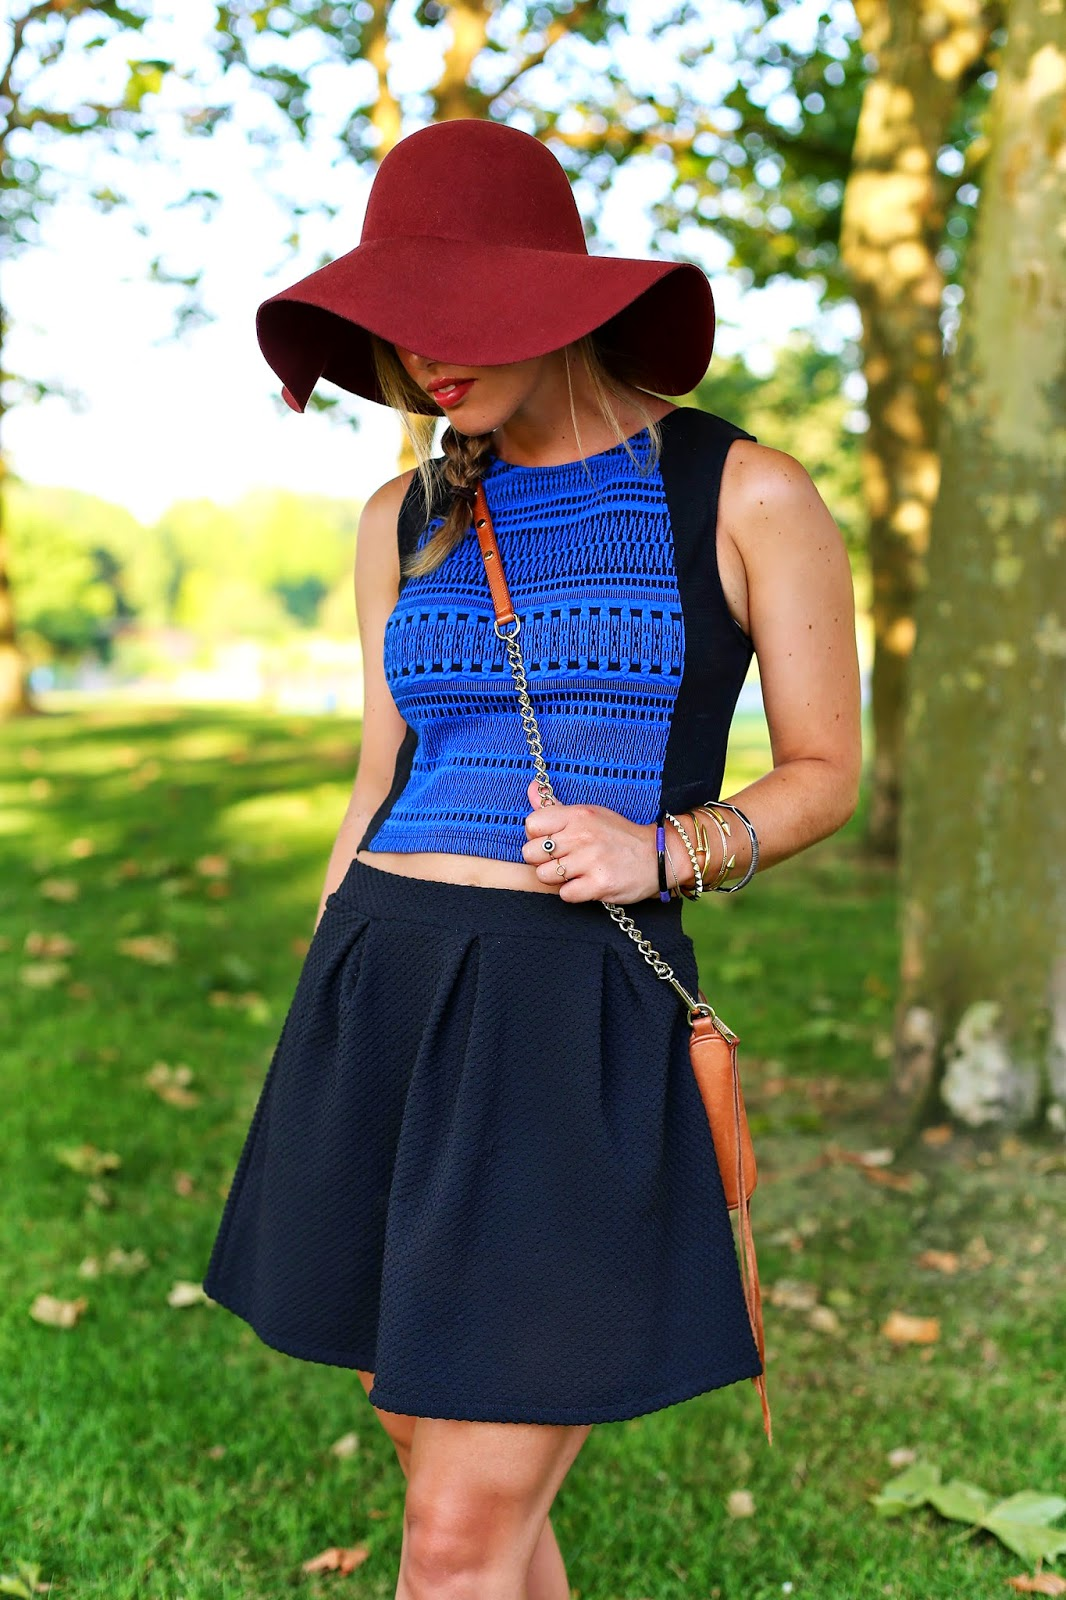 How-to-Style-a-Floppy-Hat-1